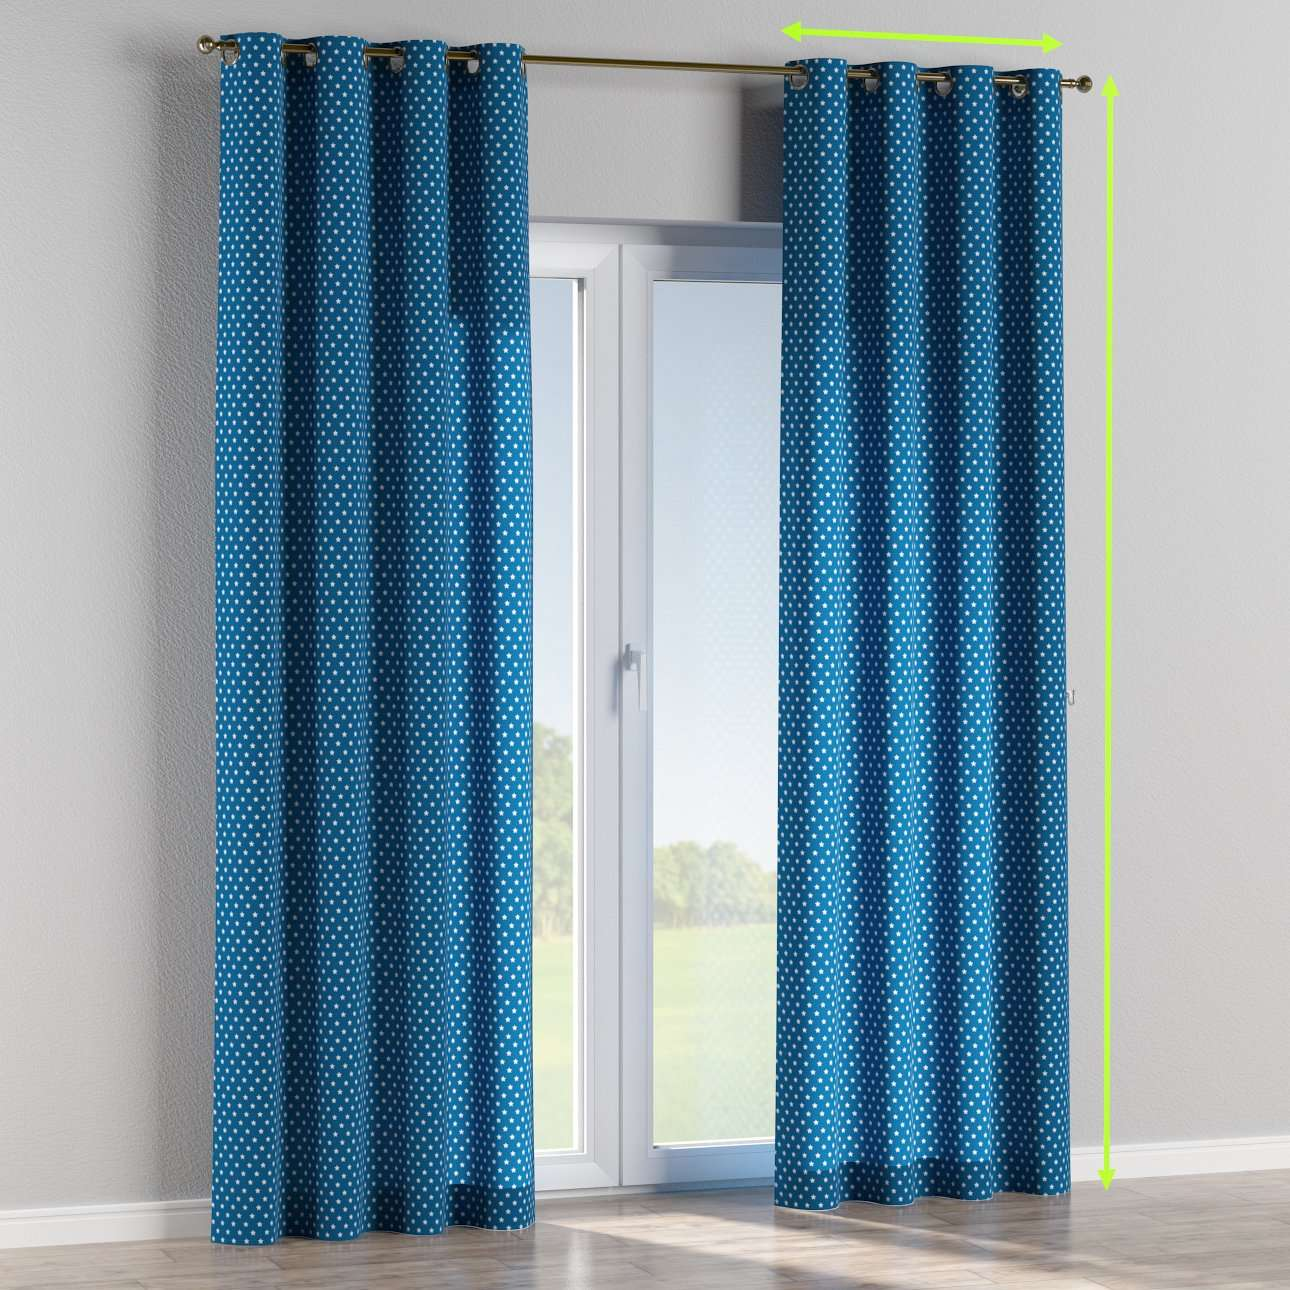 Eyelet lined curtains in collection Ashley, fabric: 137-72